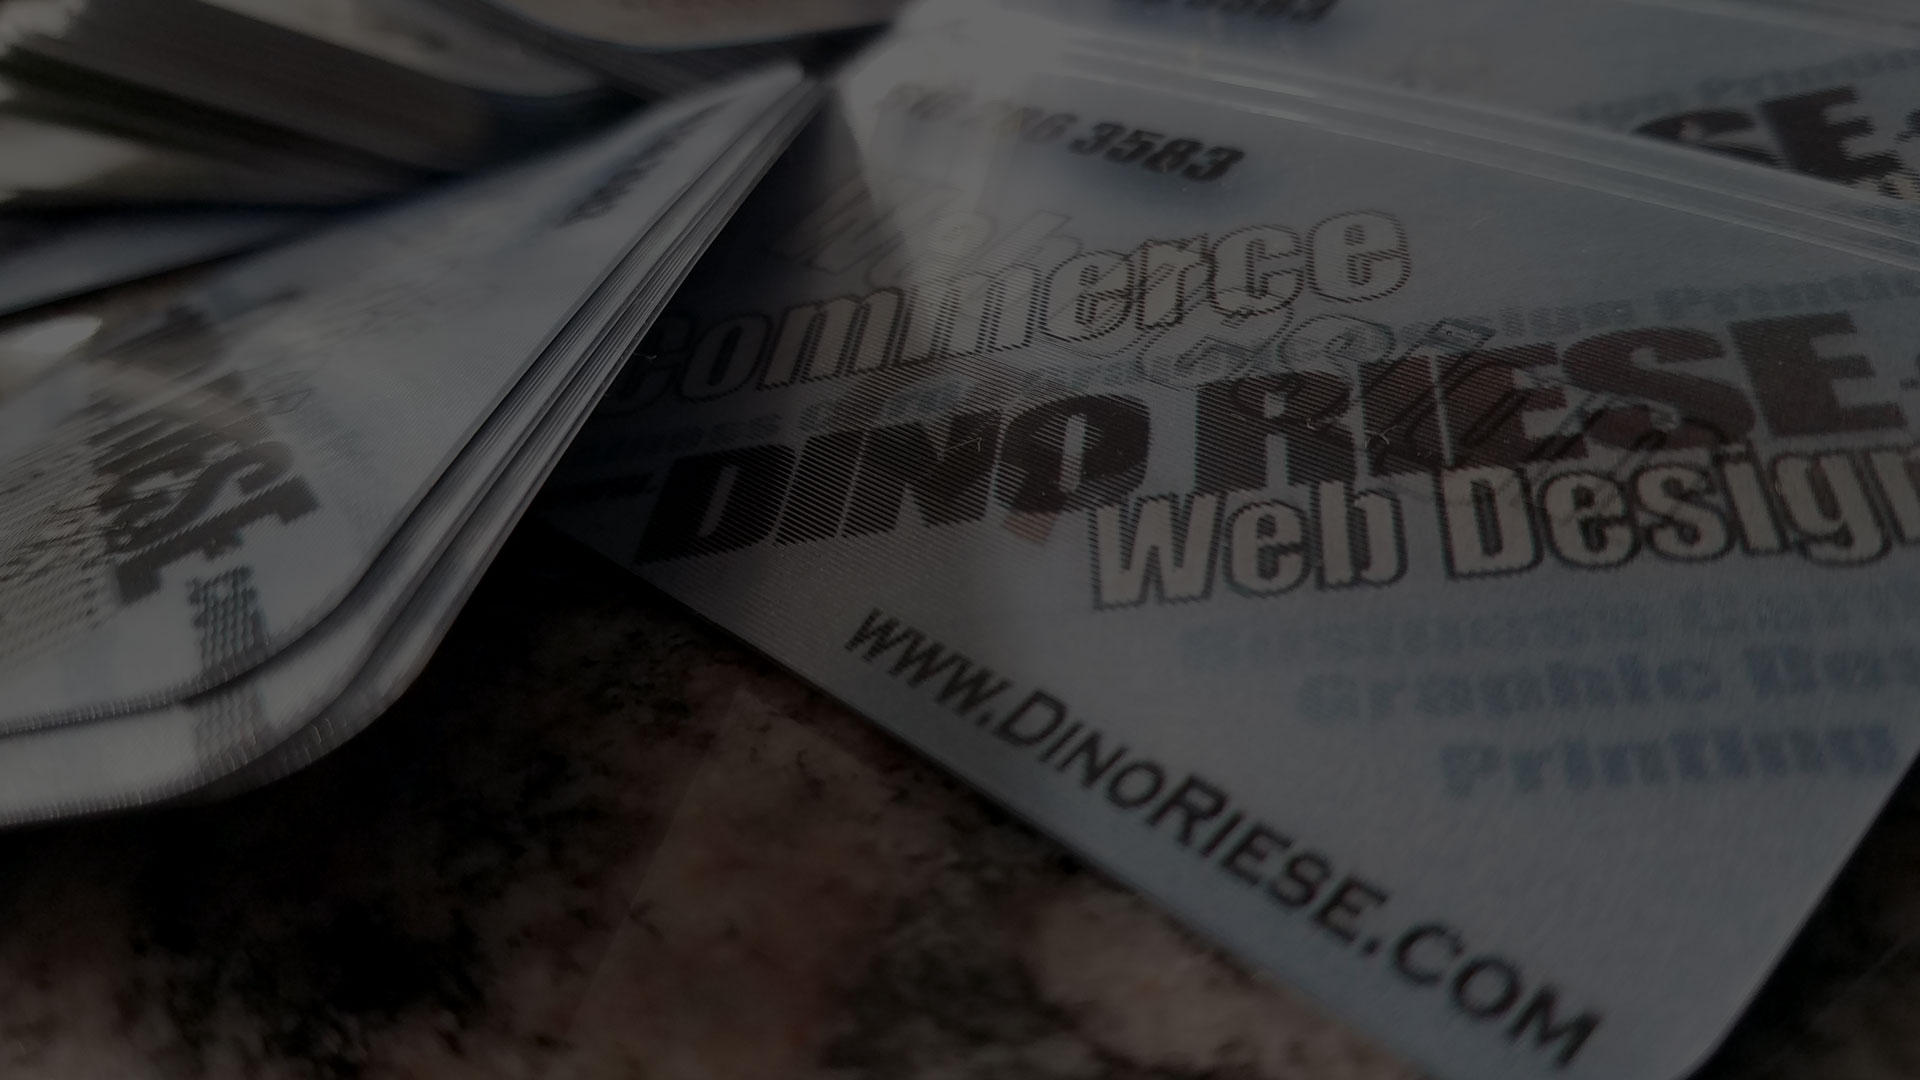 Dino Riese | Web Design & Search Engine Optimization (SEO) Service | New York City, Long Island, Queens, Brooklyn | 516.286.3583